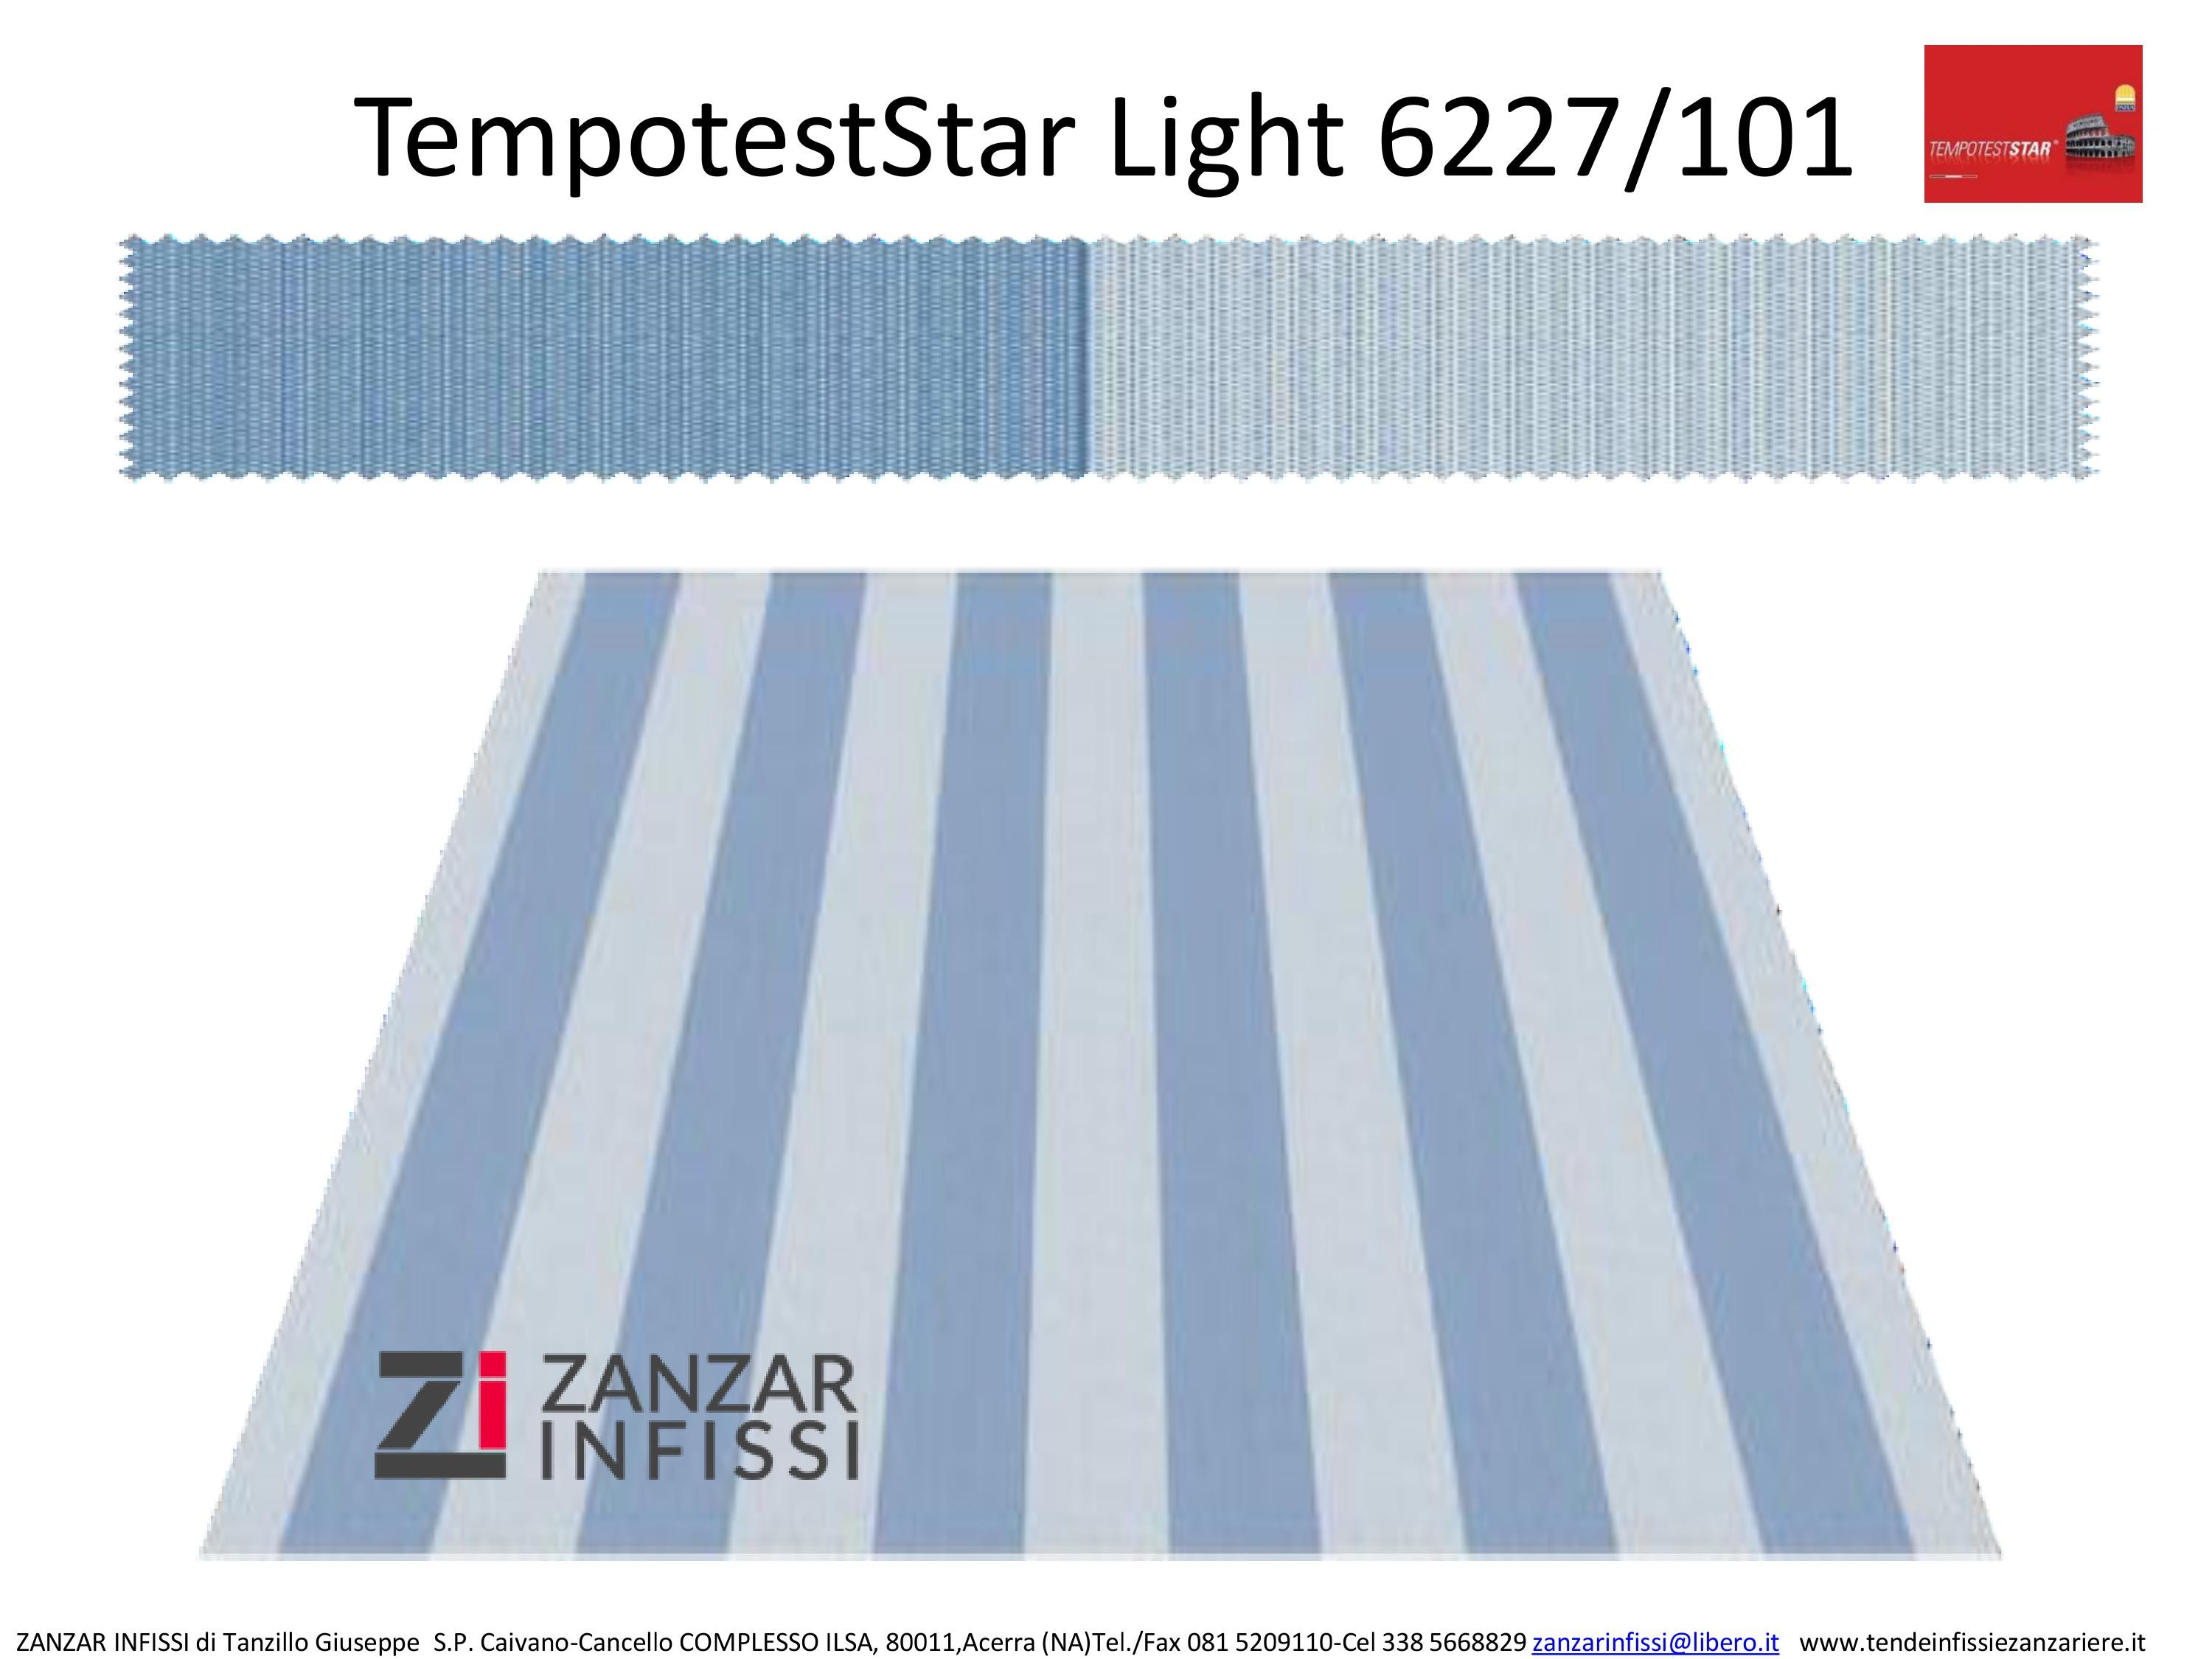 Tempotest star light 6227/101